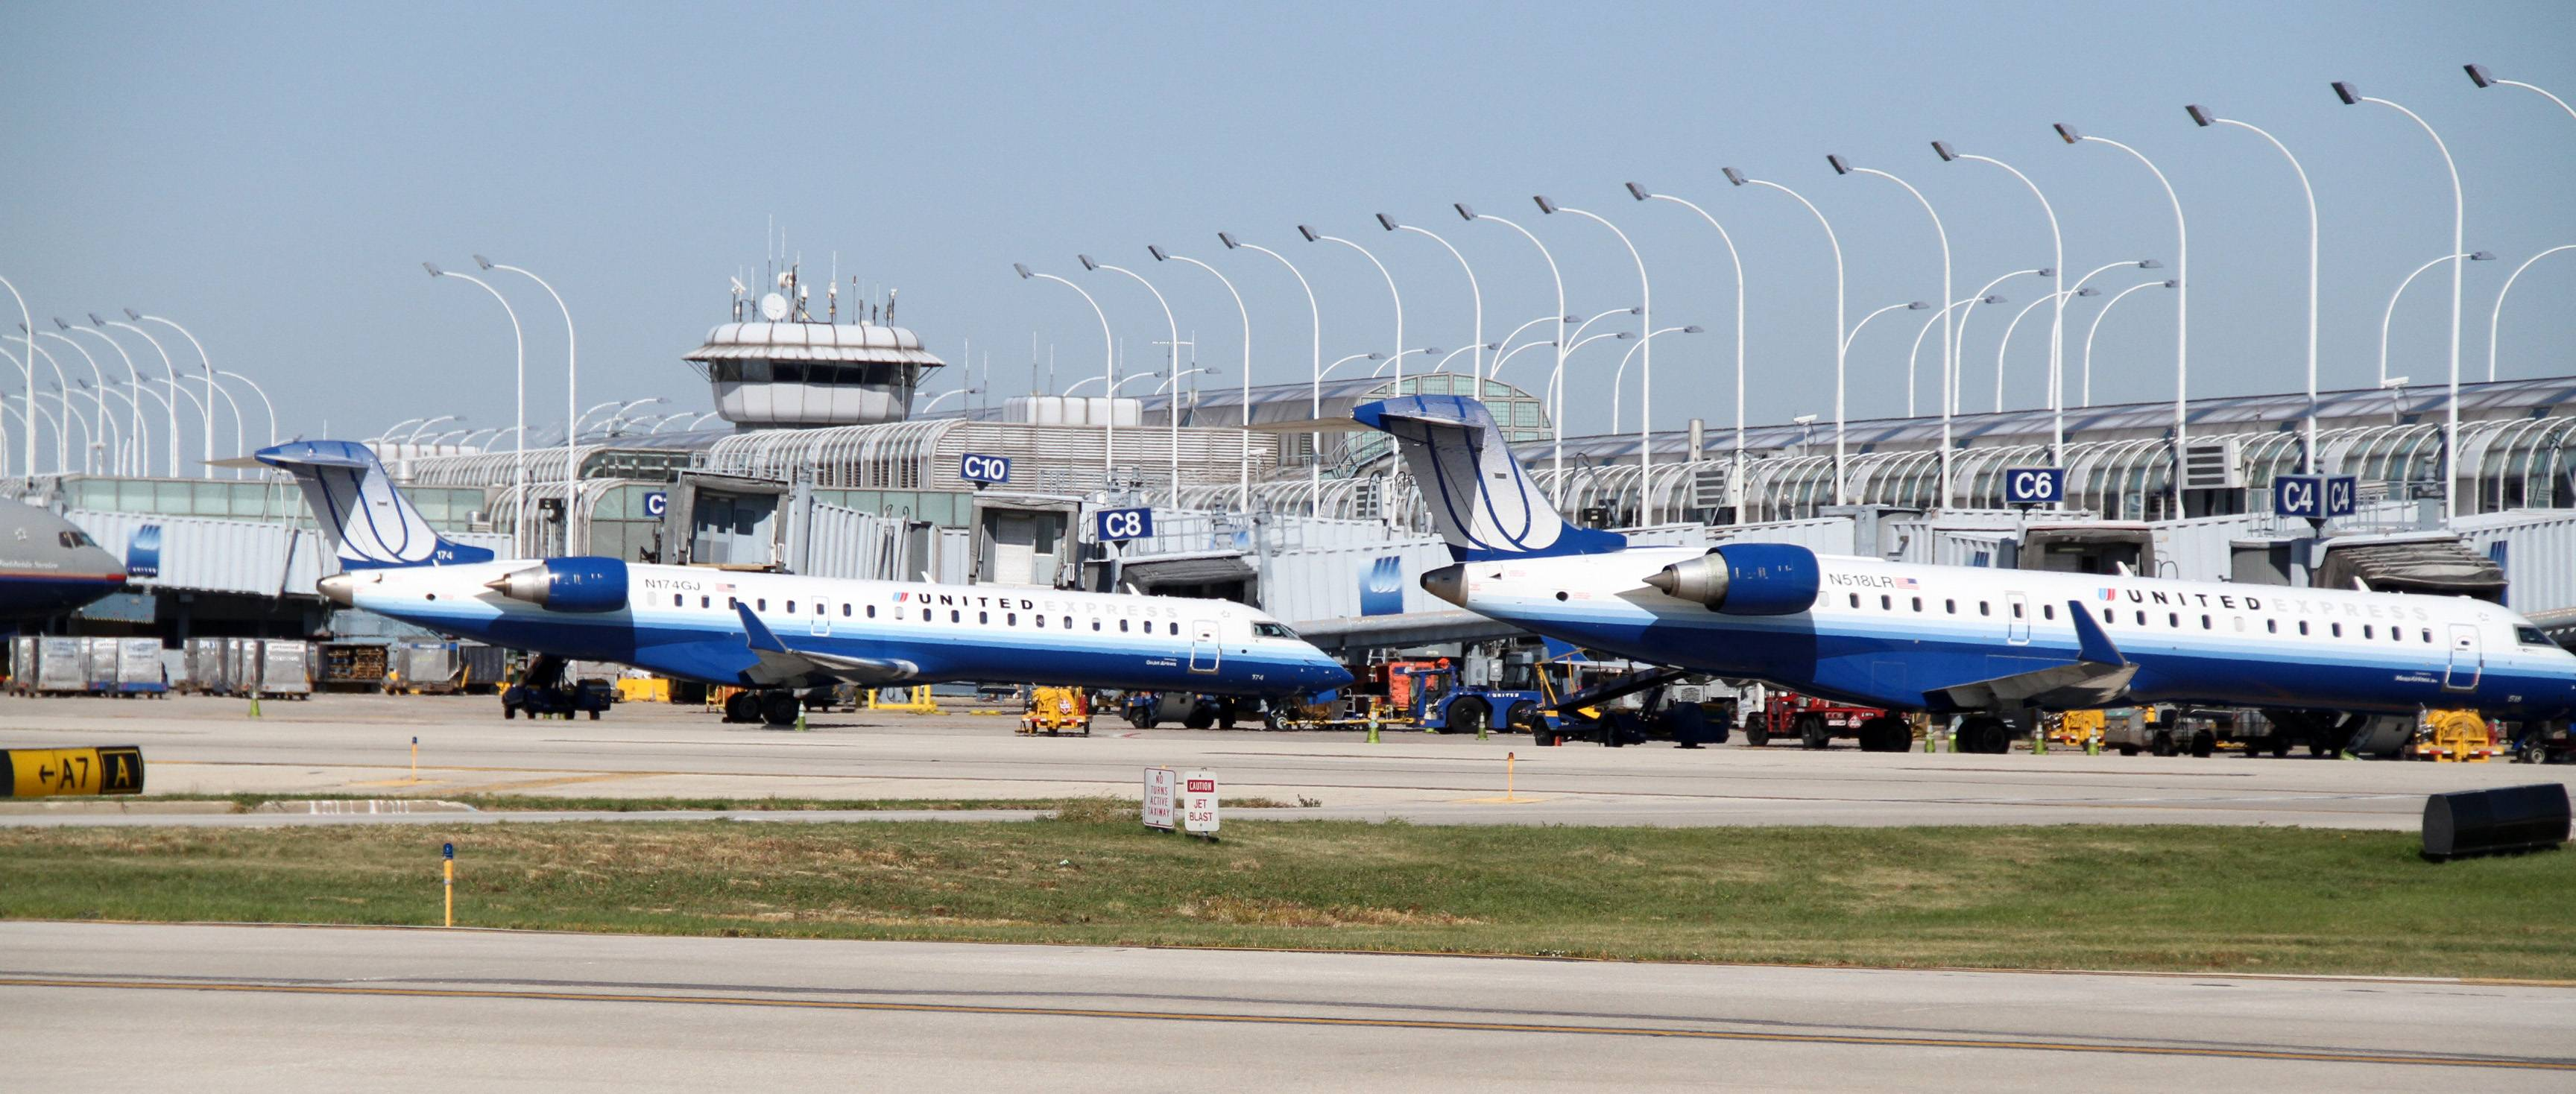 O'Hare International Airport will get another new east-west runway late this year.